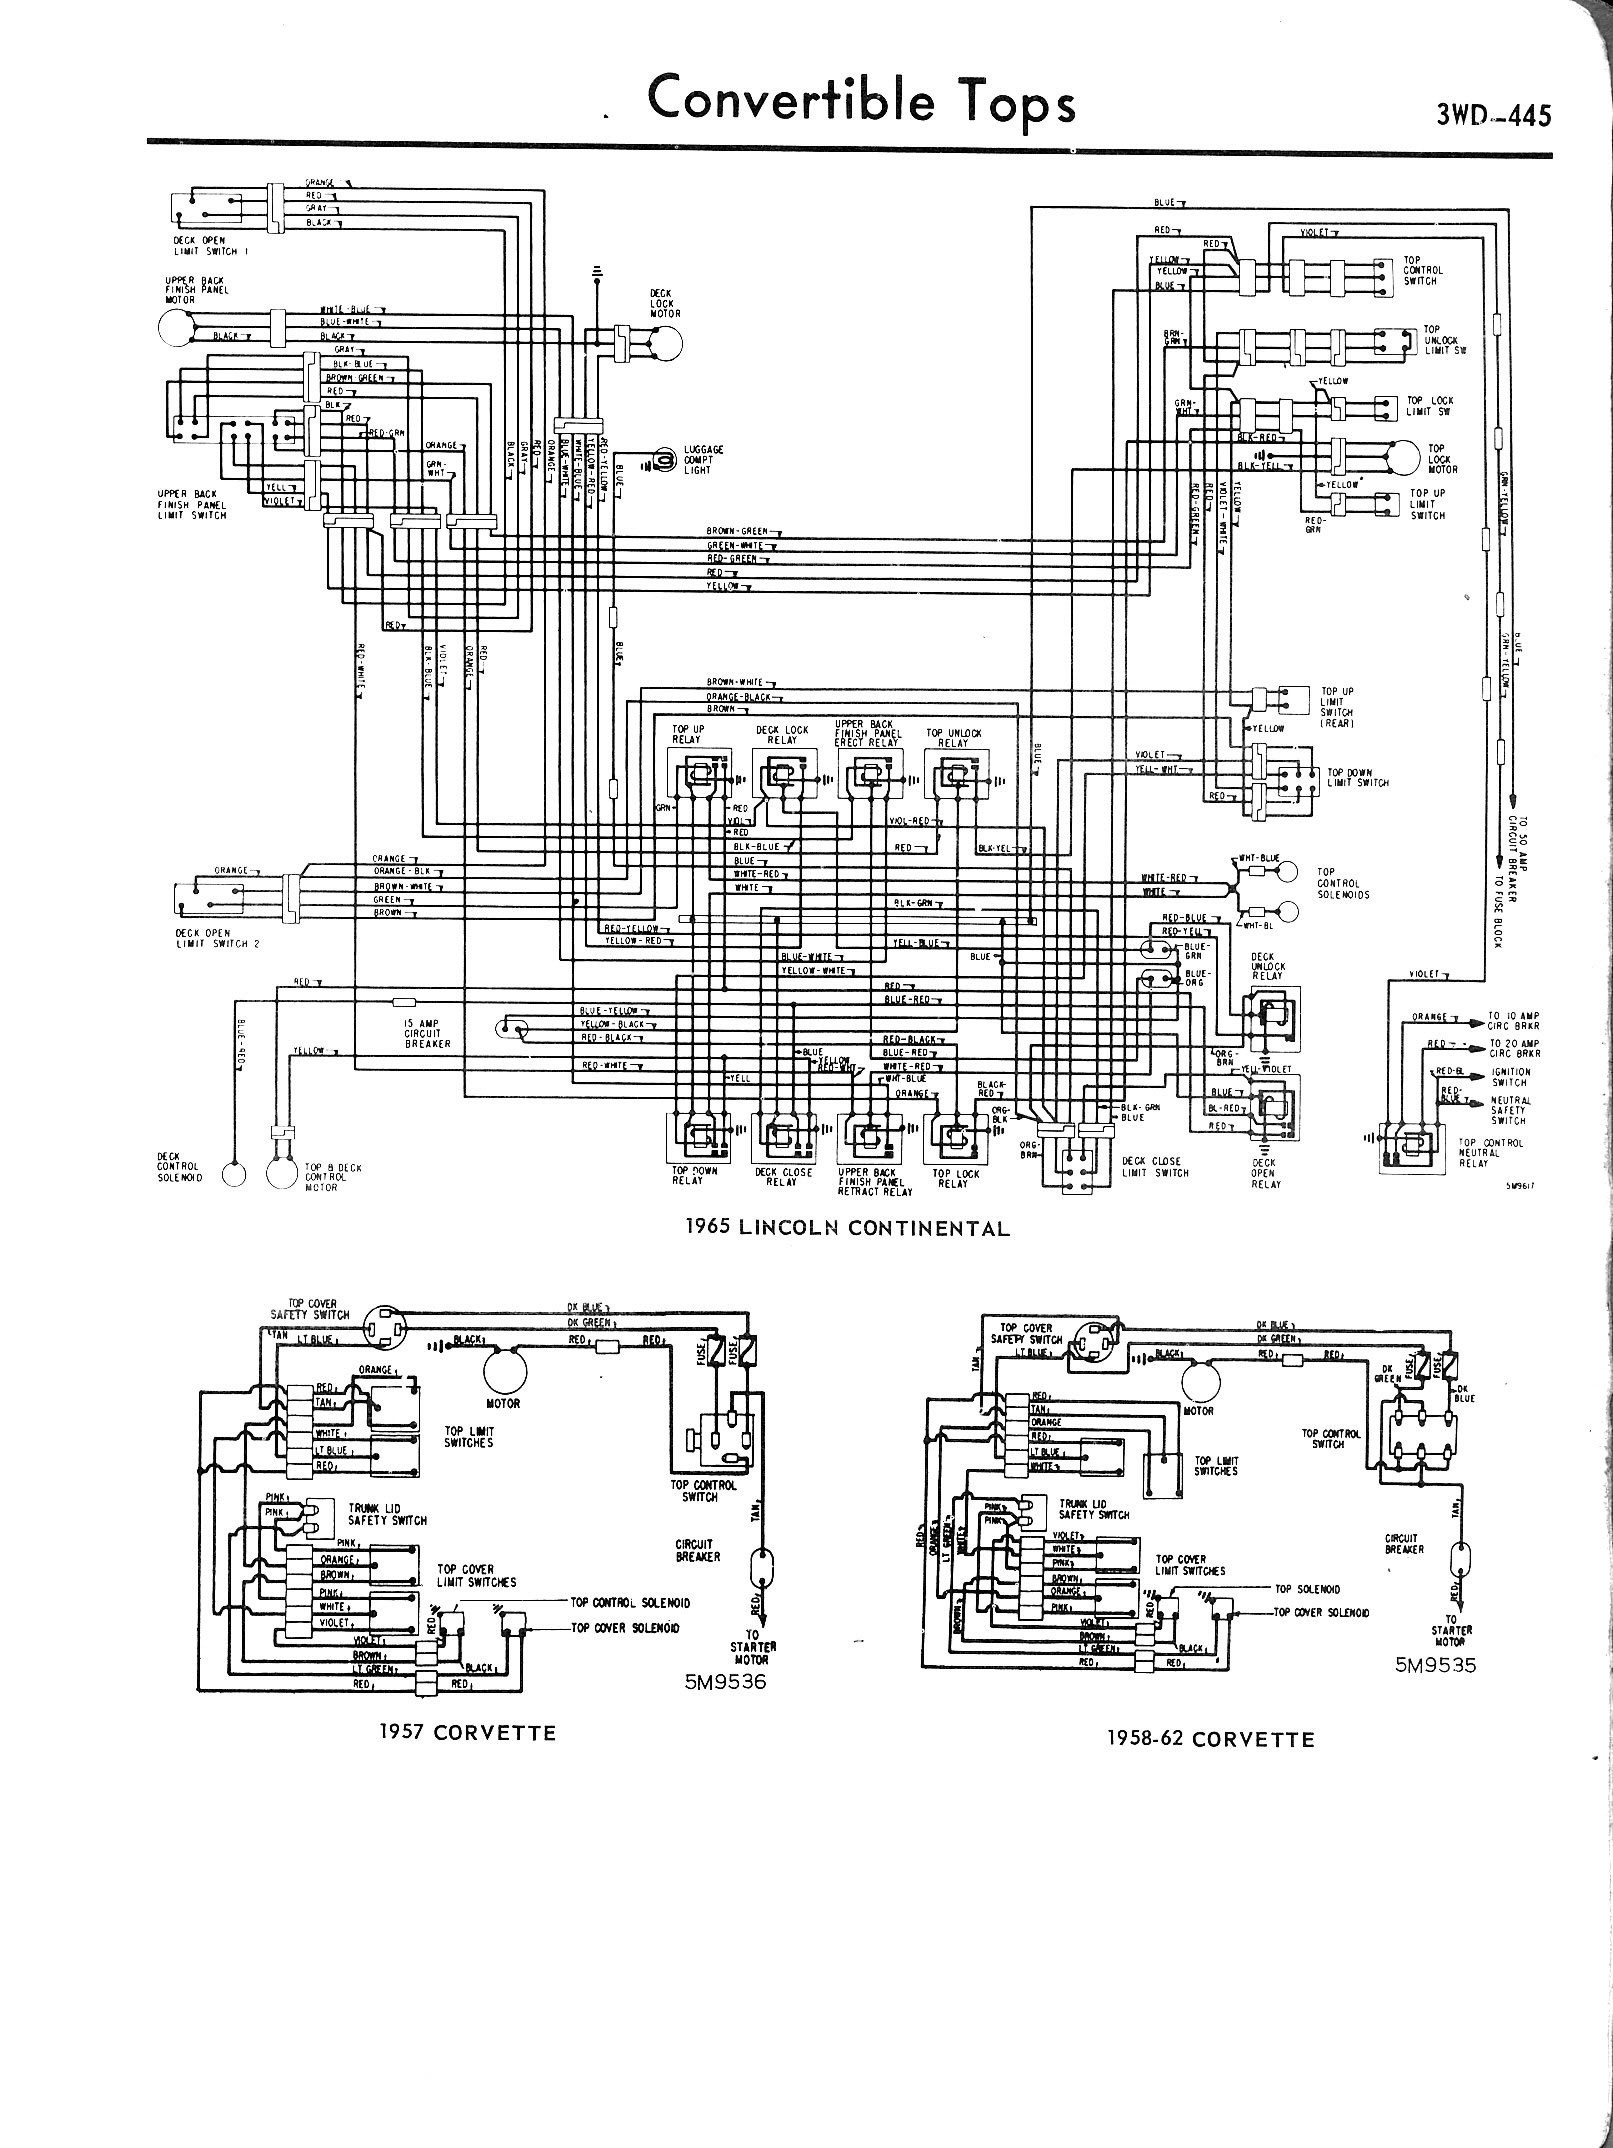 However, looking at this 57 Corvette top motor diagram  http://www.oldcarmanualproject.com/m...WD-445_jpg.jpg The power wire ...